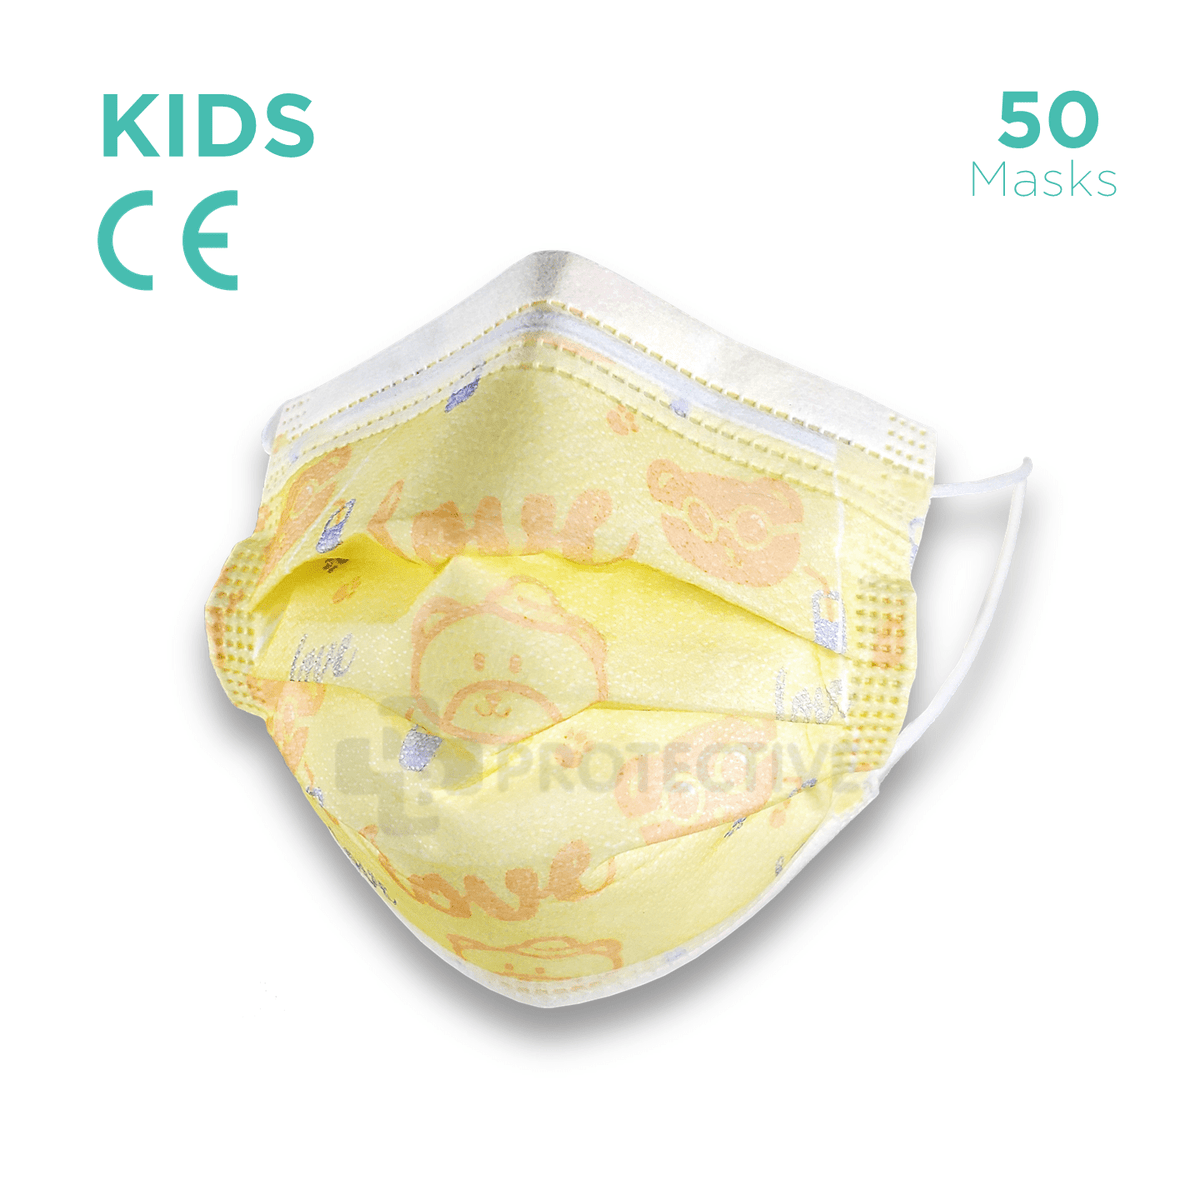 Kids Disposable face Mask Kids - 50 Disposable Kids Face Masks